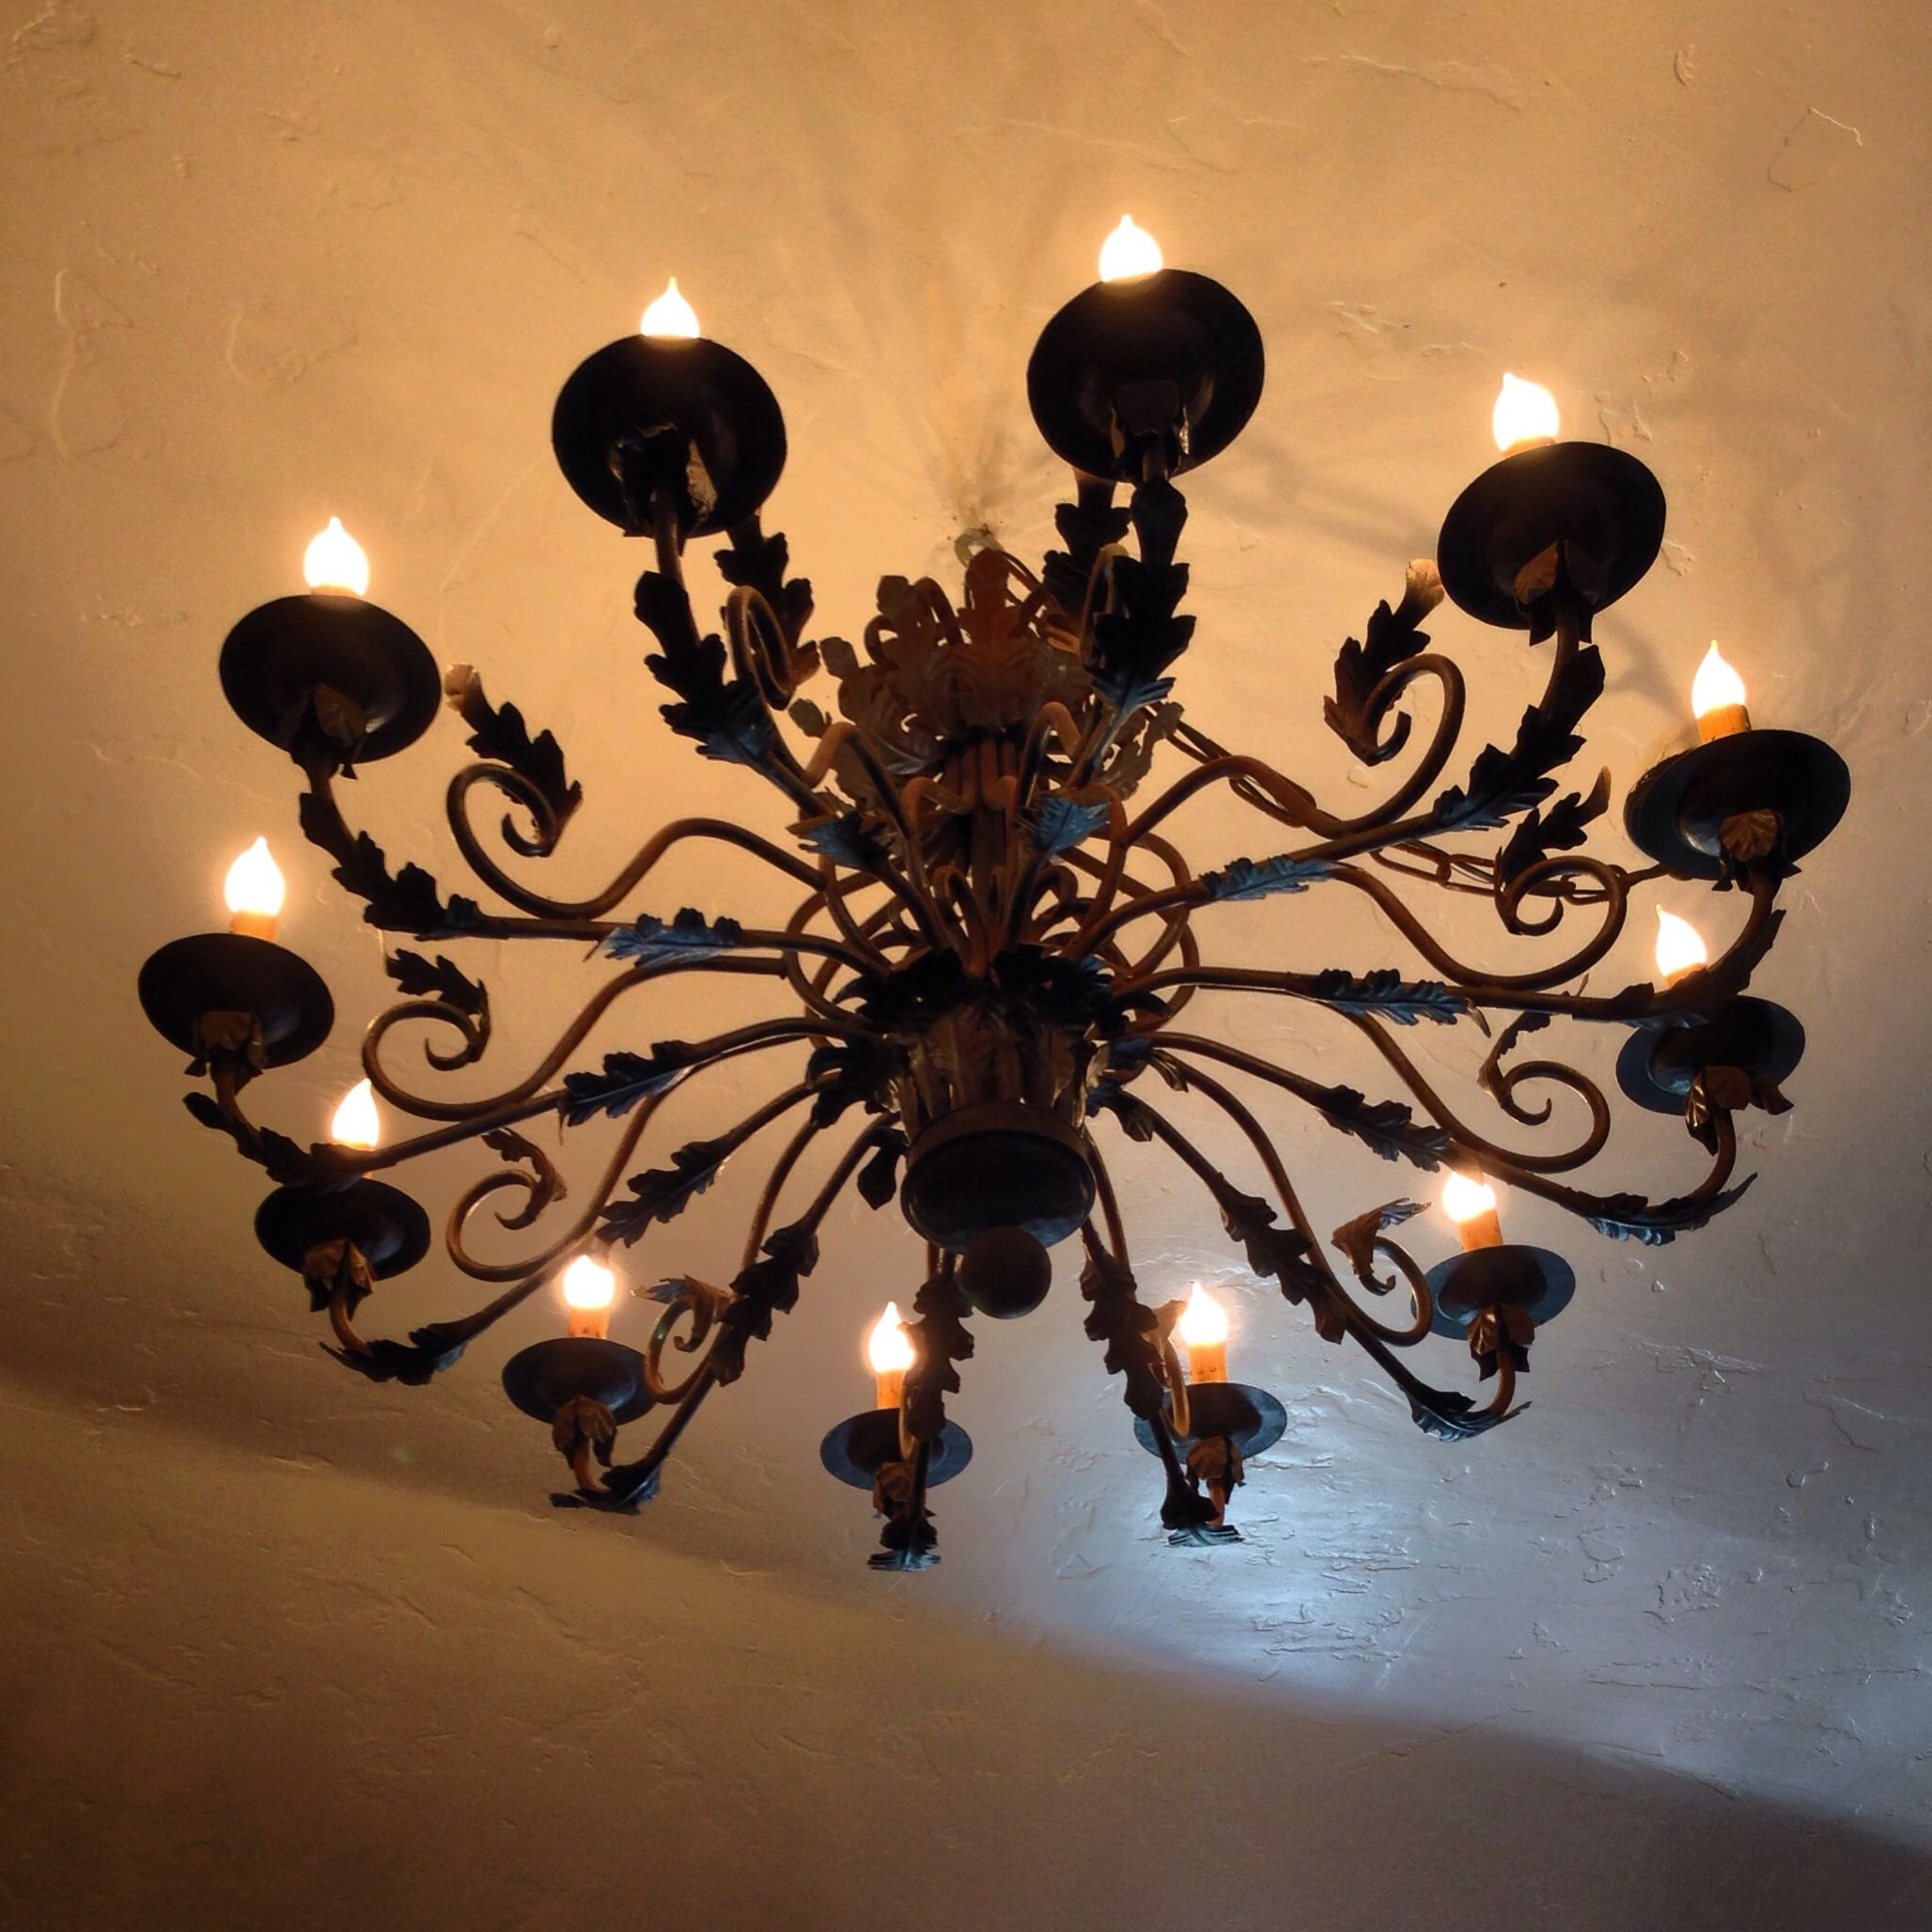 chandelier spanish garden inn santa barbara | Travel | Pinterest ...